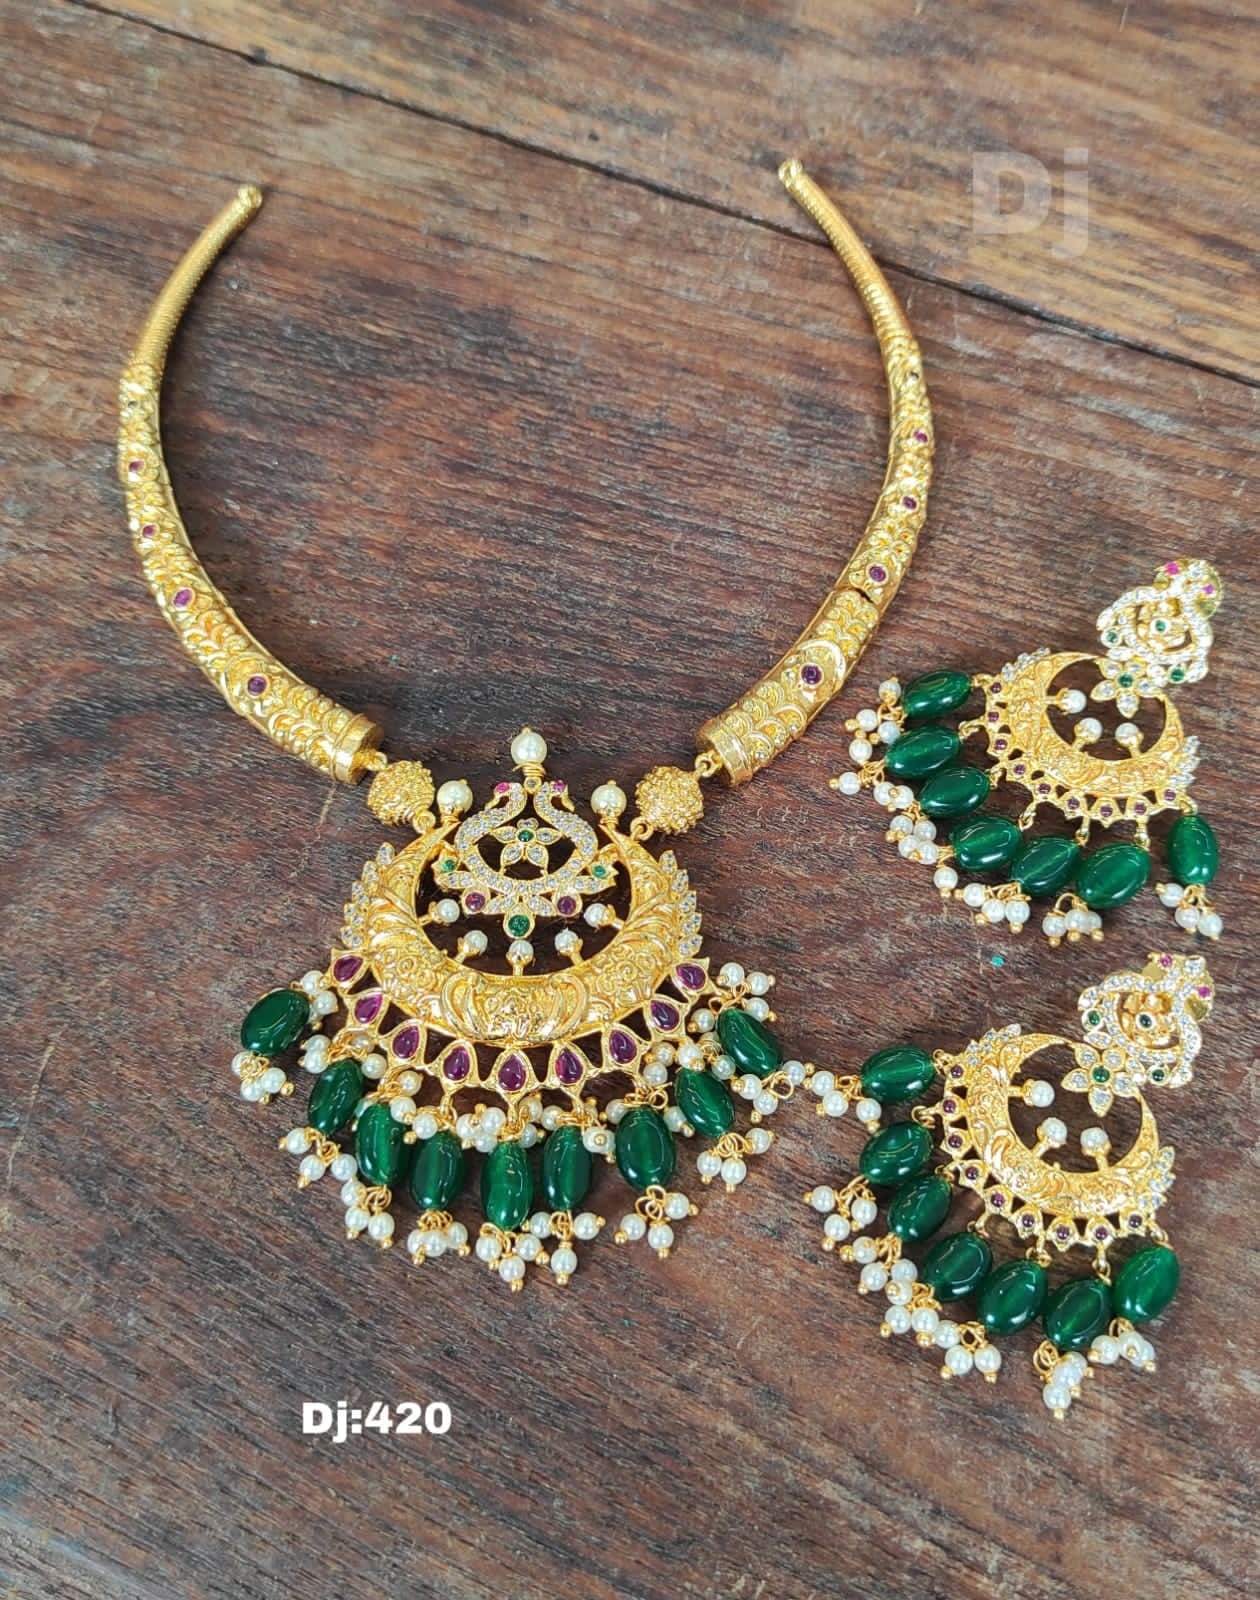 Beautiful one gram gold Kante necklace with matching chaandbalis. 1 gram gold antique jewellery 1 gram gold jewellery with price one gram jewellery